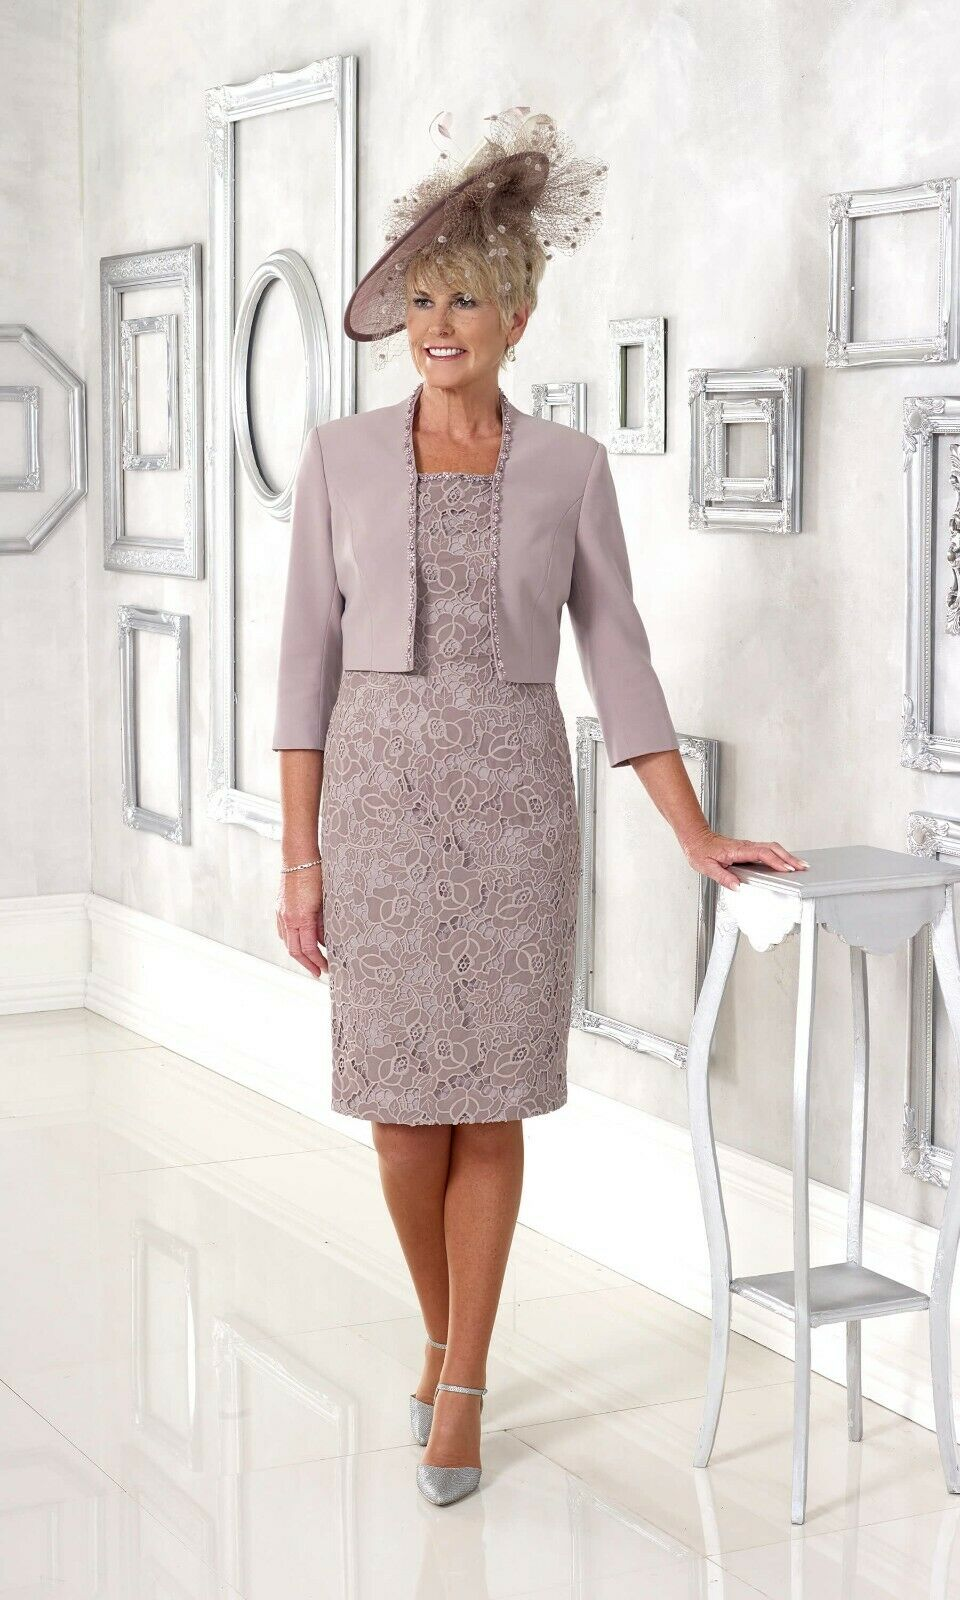 Veromia Dress Code mother of the bride outfit DC104 the colour is mink as shown